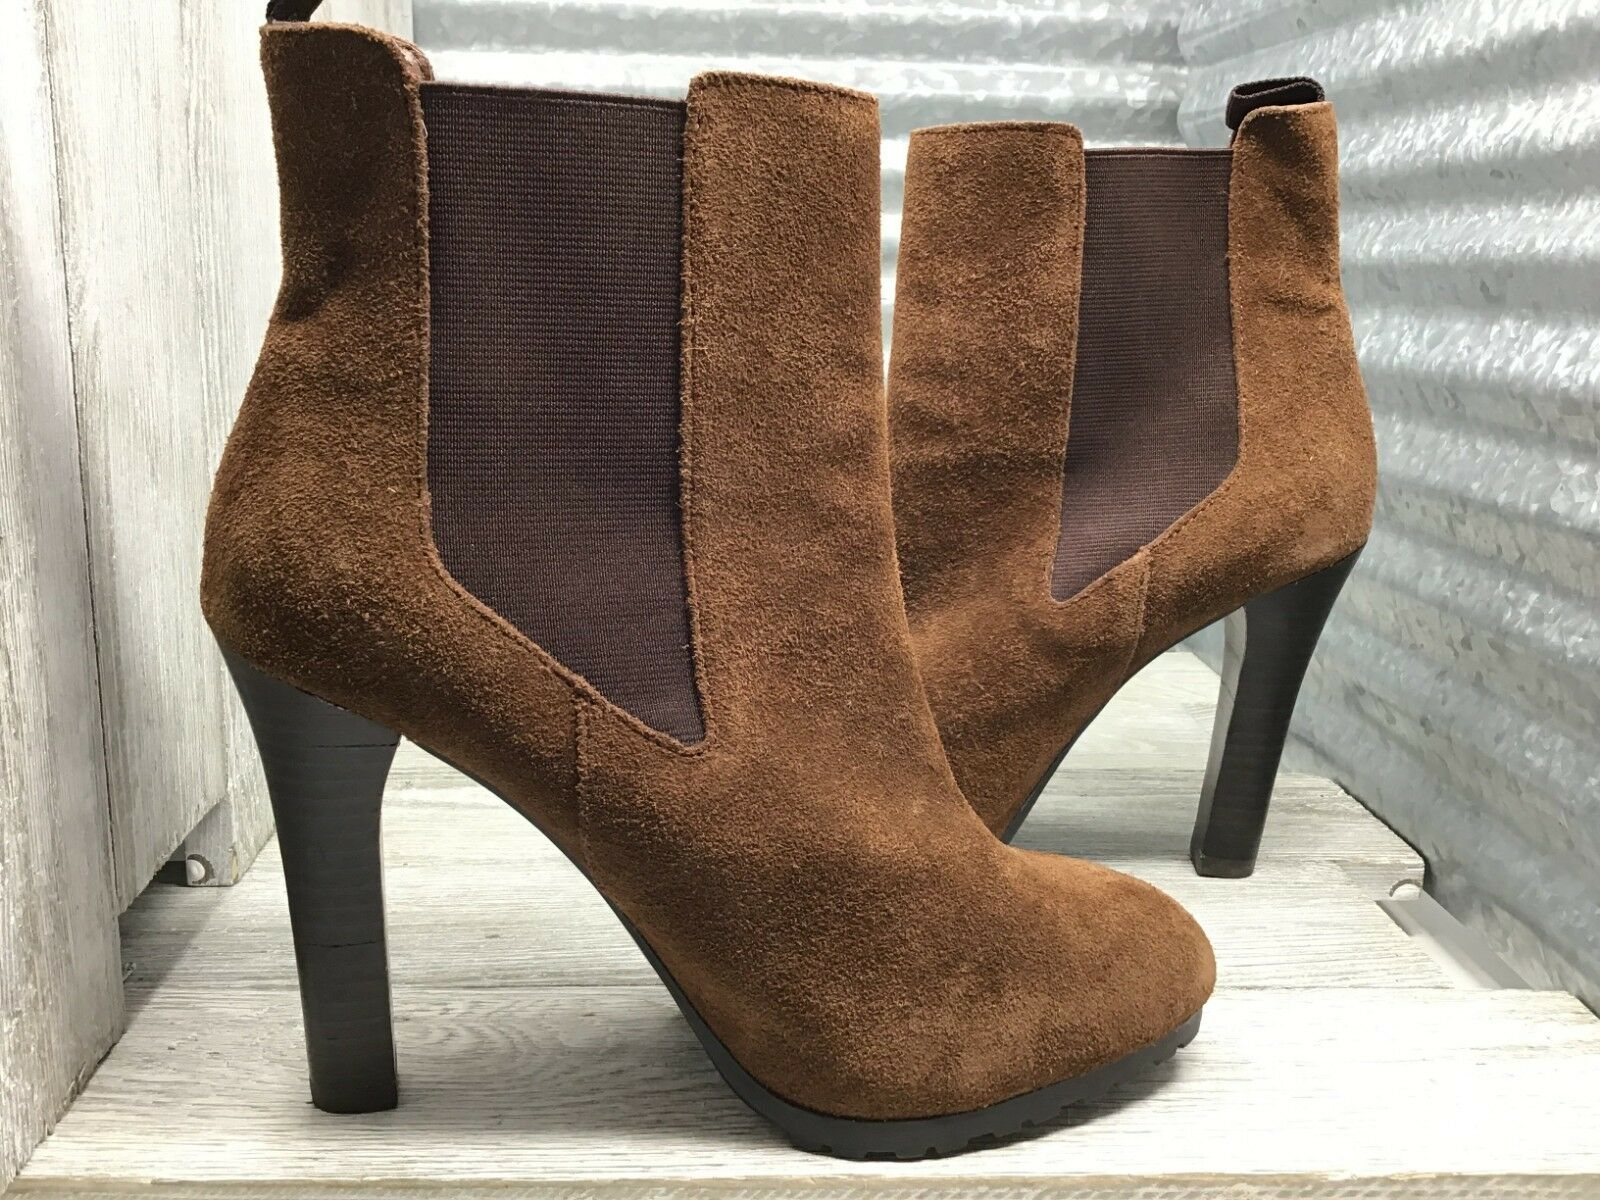 Lauren Ralph Brown Leather Women's Ankle Chelsea Boot Suede Sole Grip Size 7.5